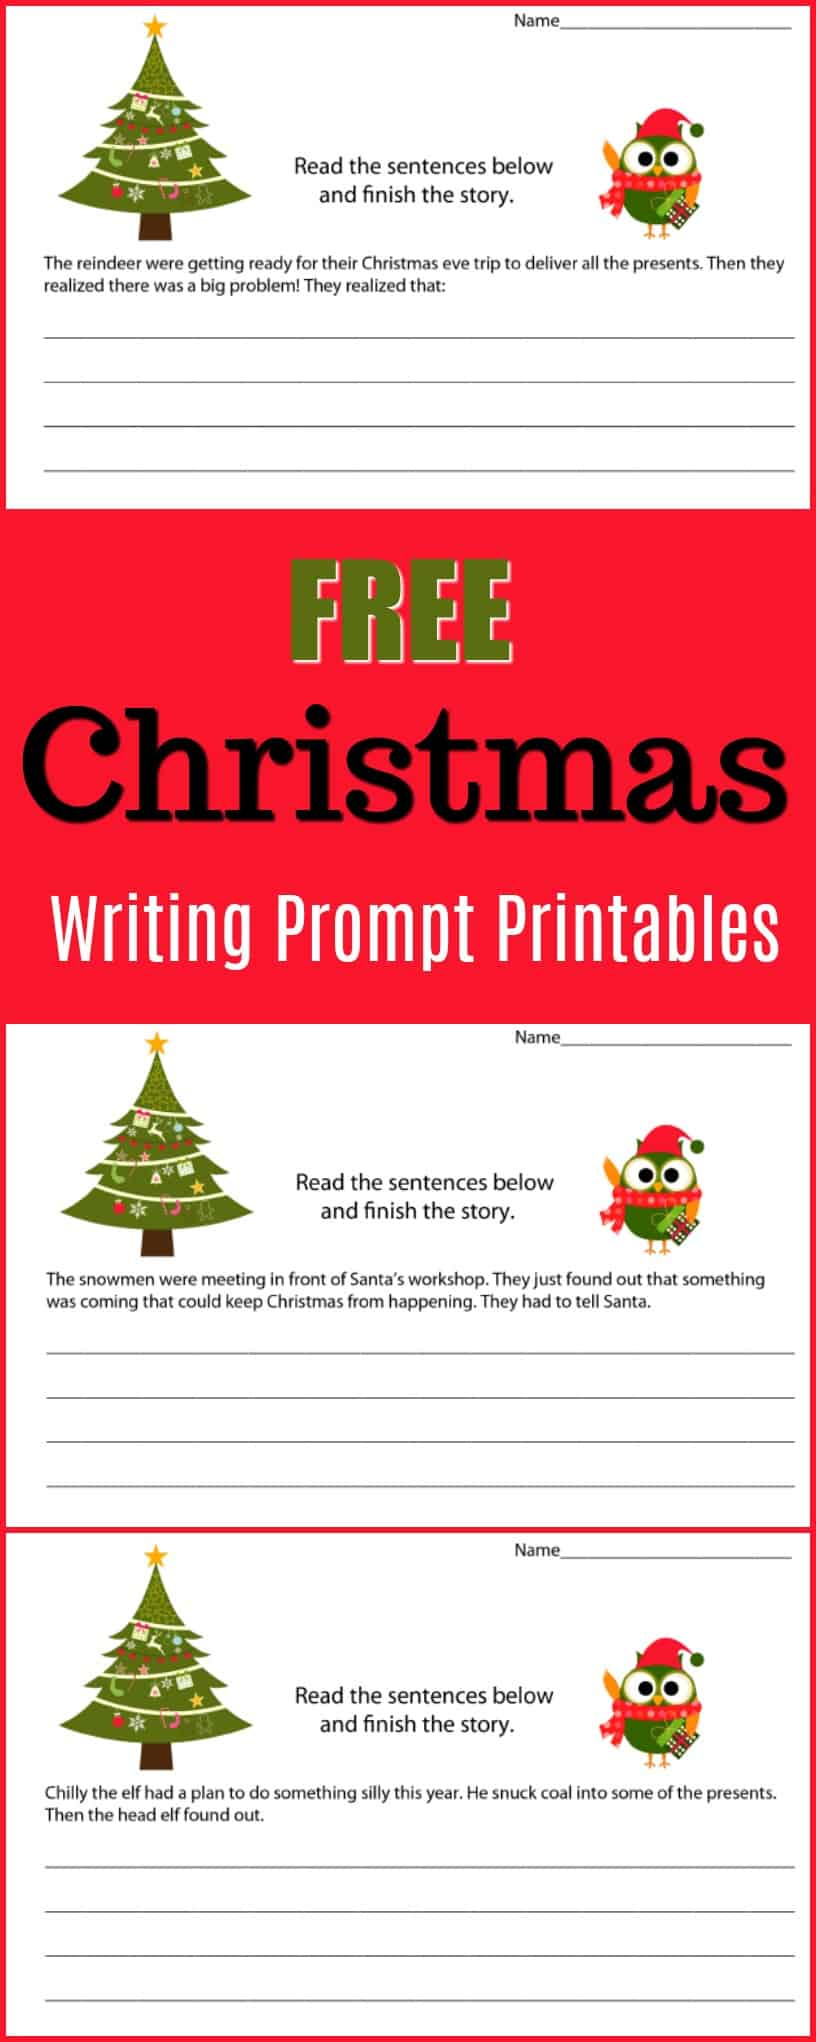 christmas writing prompt printables